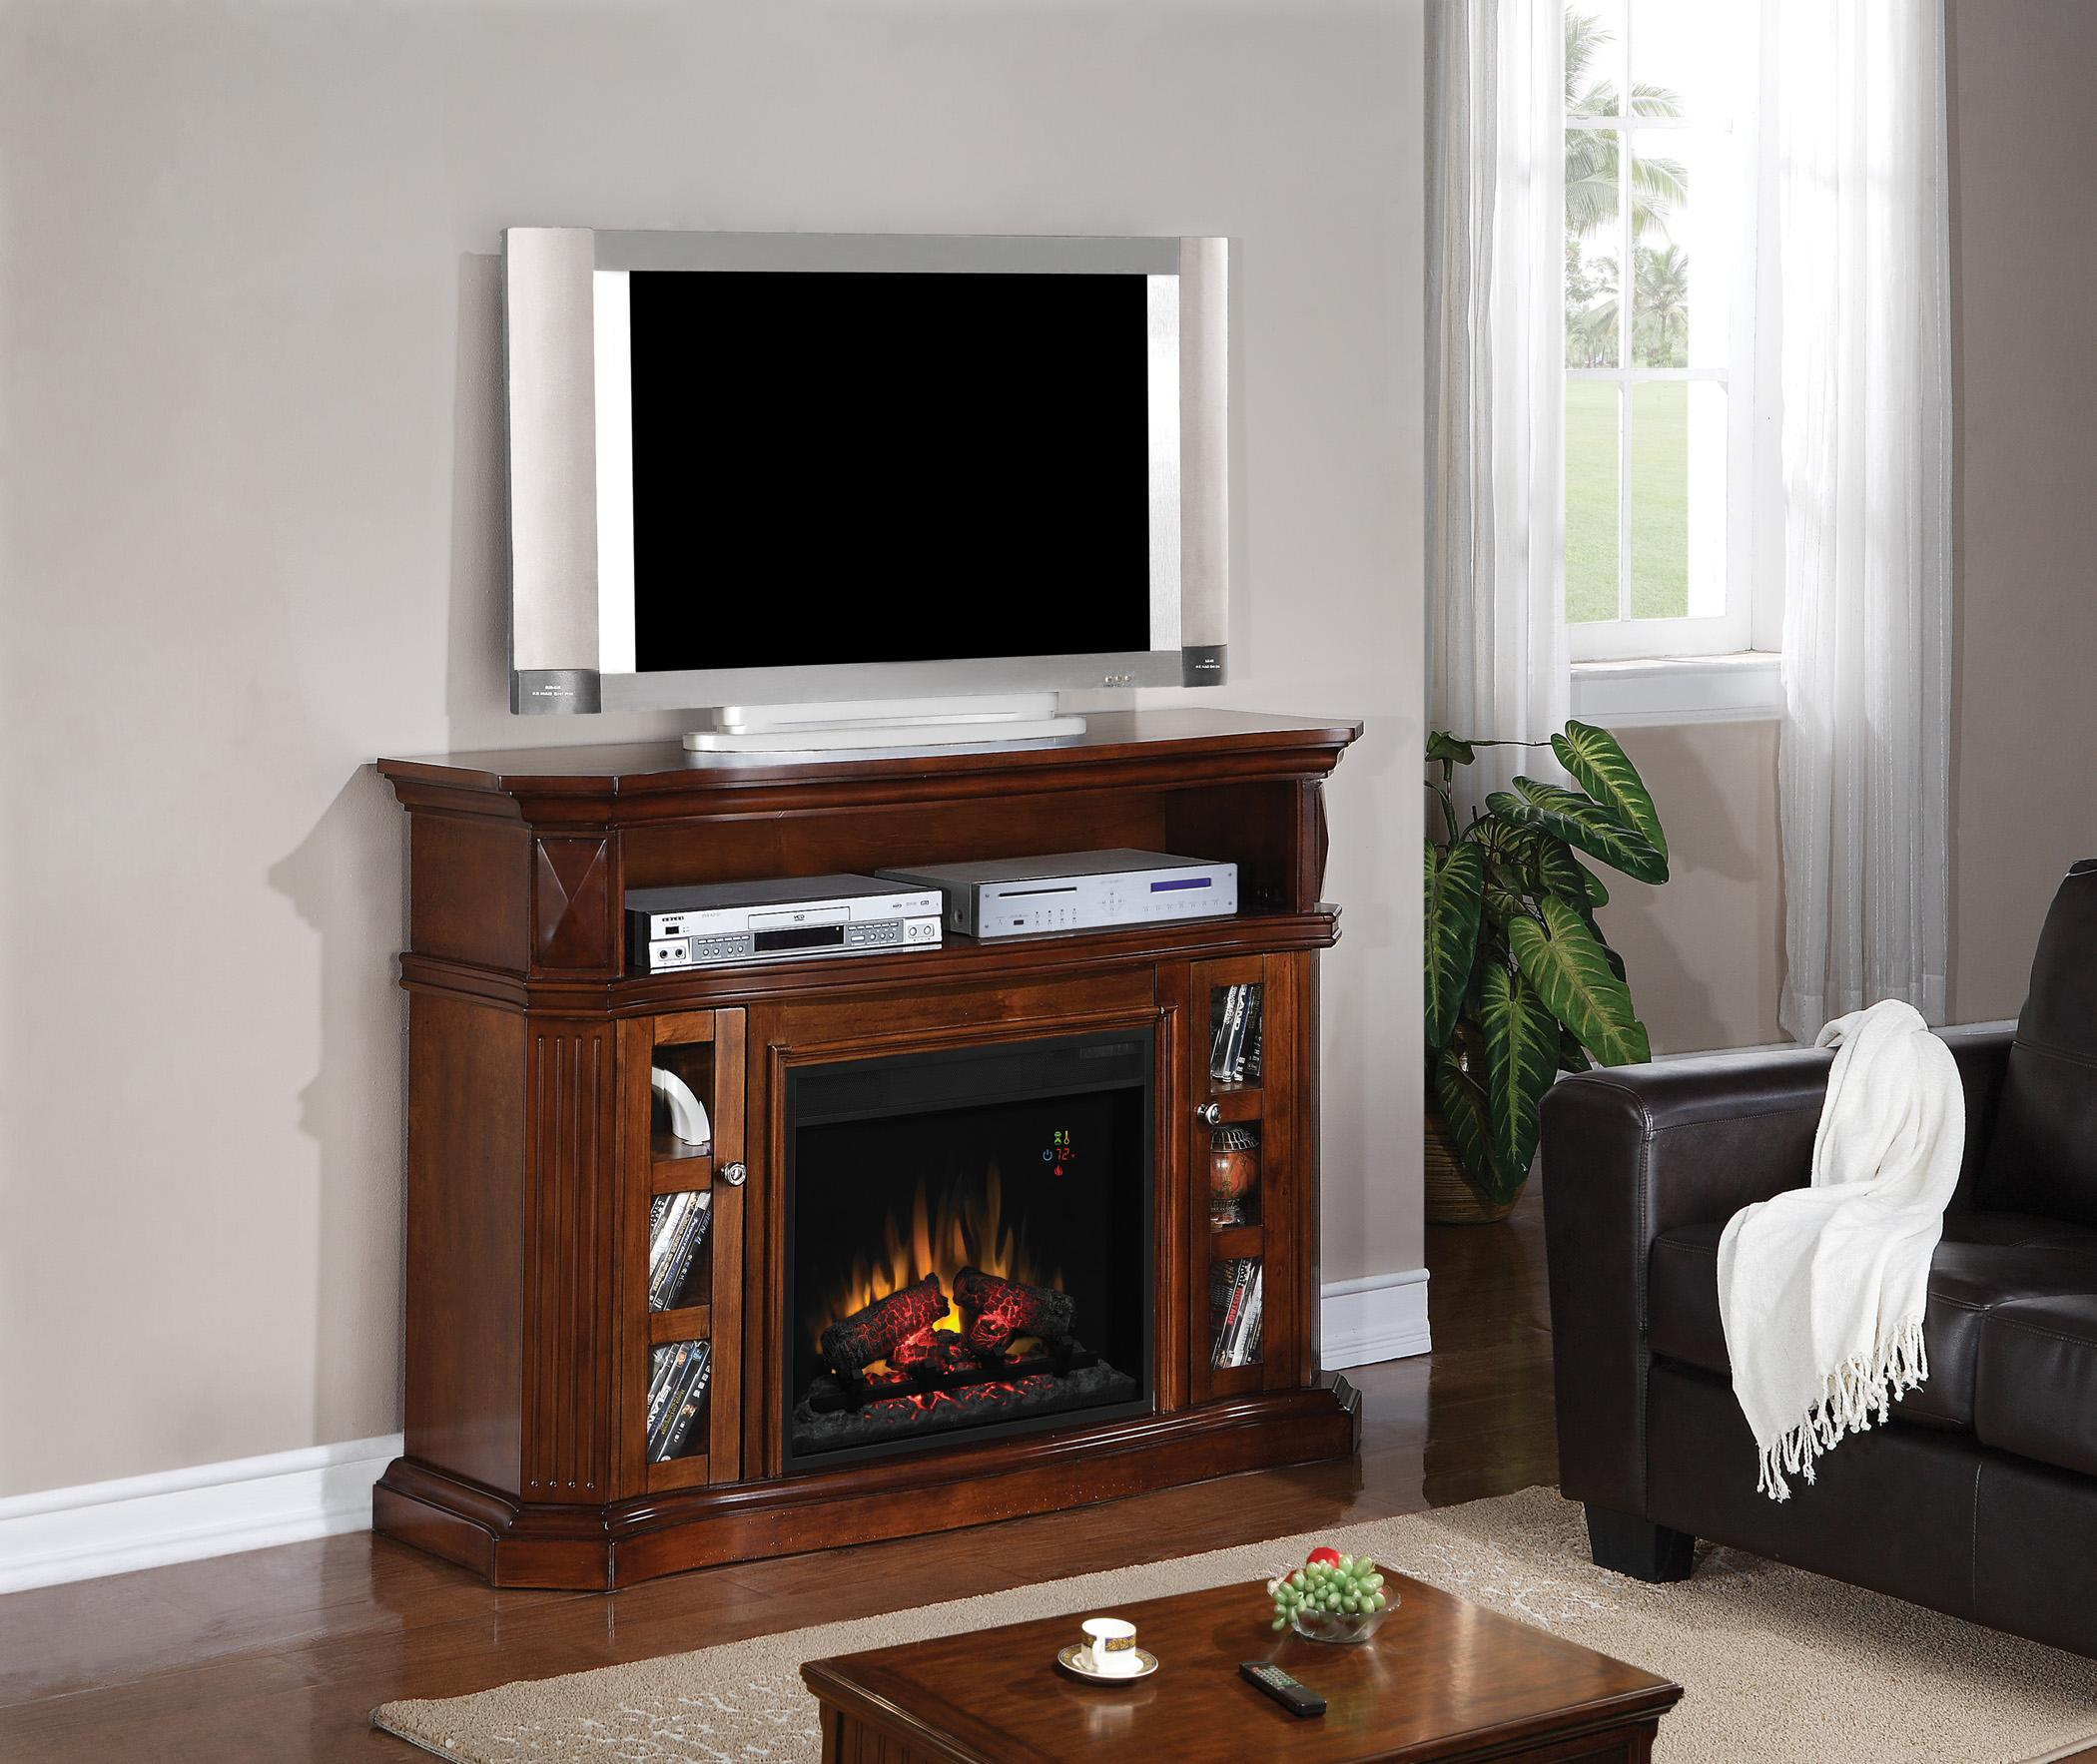 Amazon.com: ClassicFlame 23MM774-W502 Bellemeade TV Stand for TVs ...